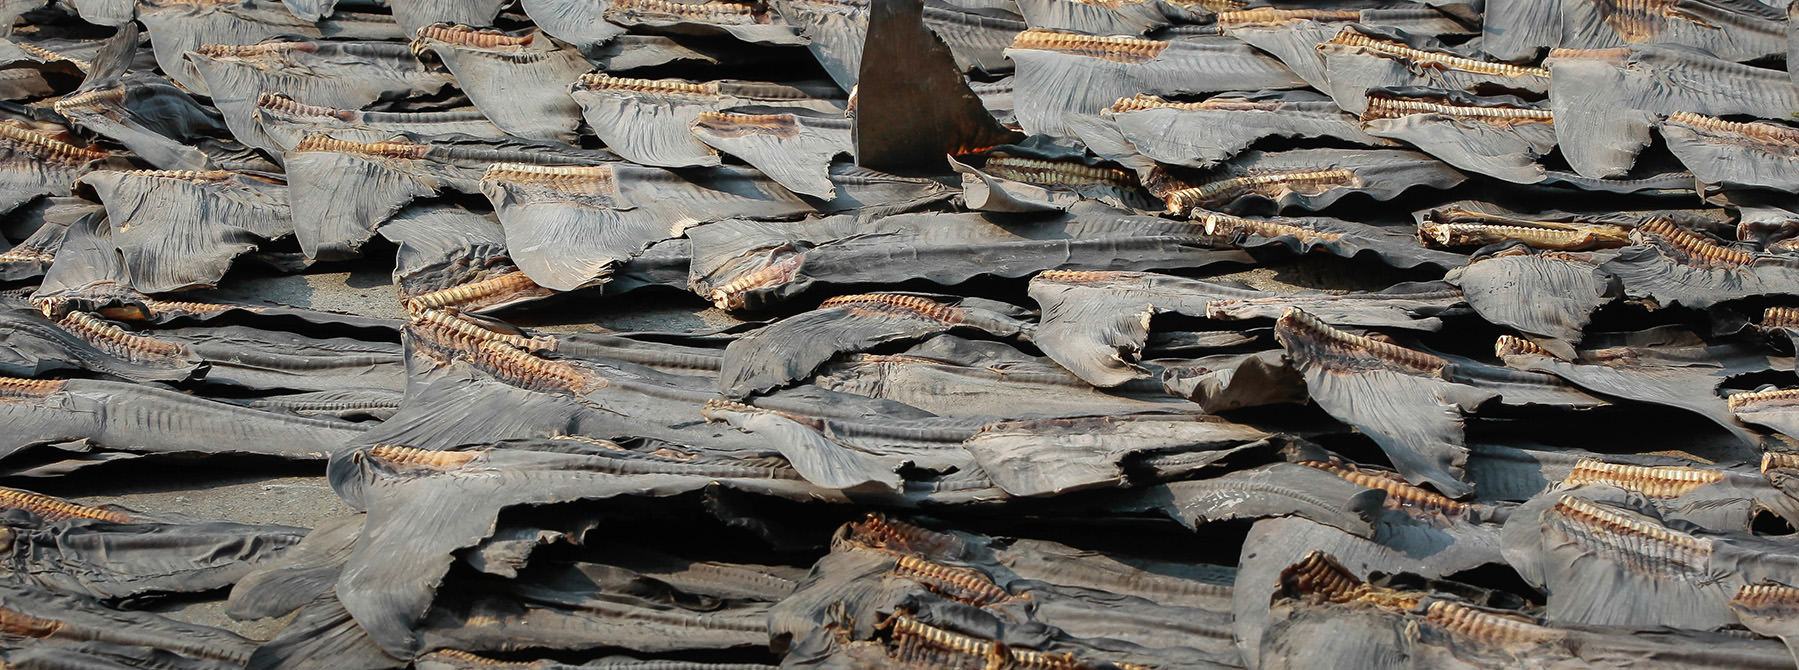 Shark fins with skin during the drying process, taken in Hong Kong © WWF-Hong Kong / Elson Li